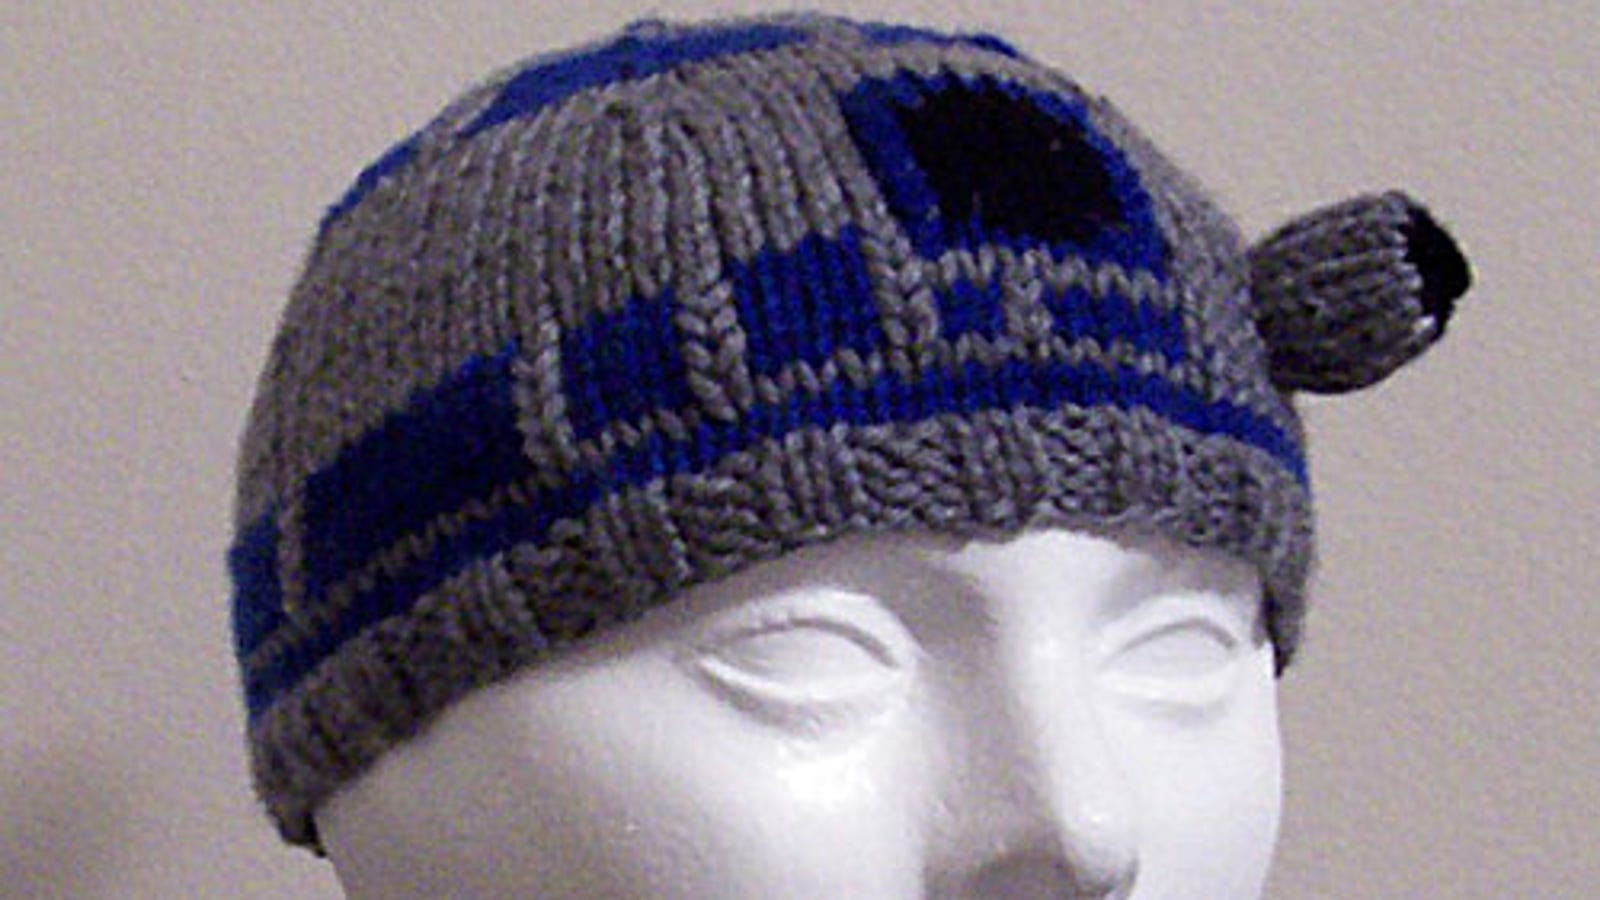 R2-D2 Beanie Gives Us a Warm Fuzzy Feeling 7ee648b9877